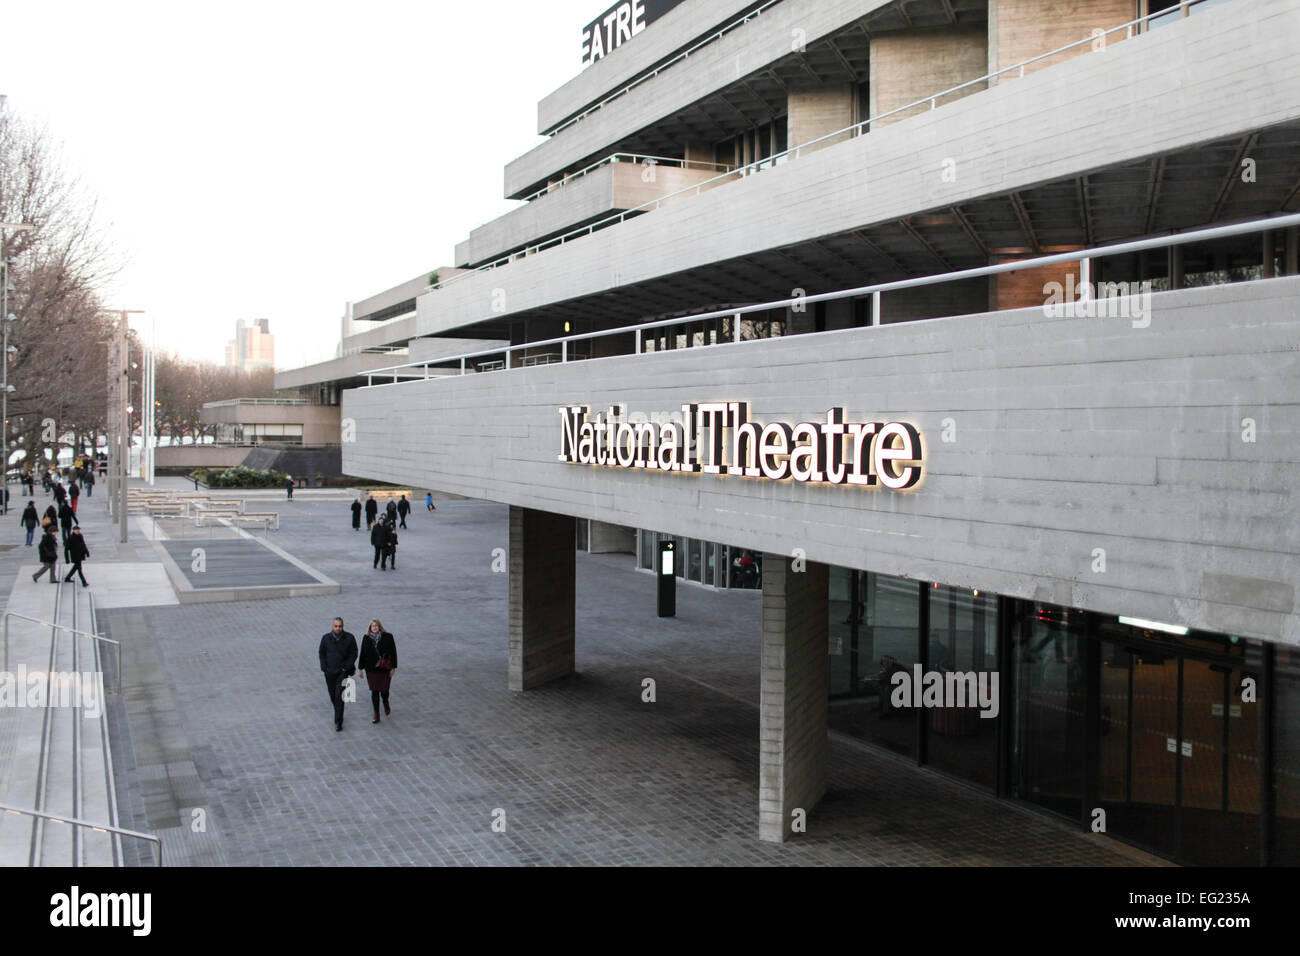 The National Theatre in London. - Stock Image